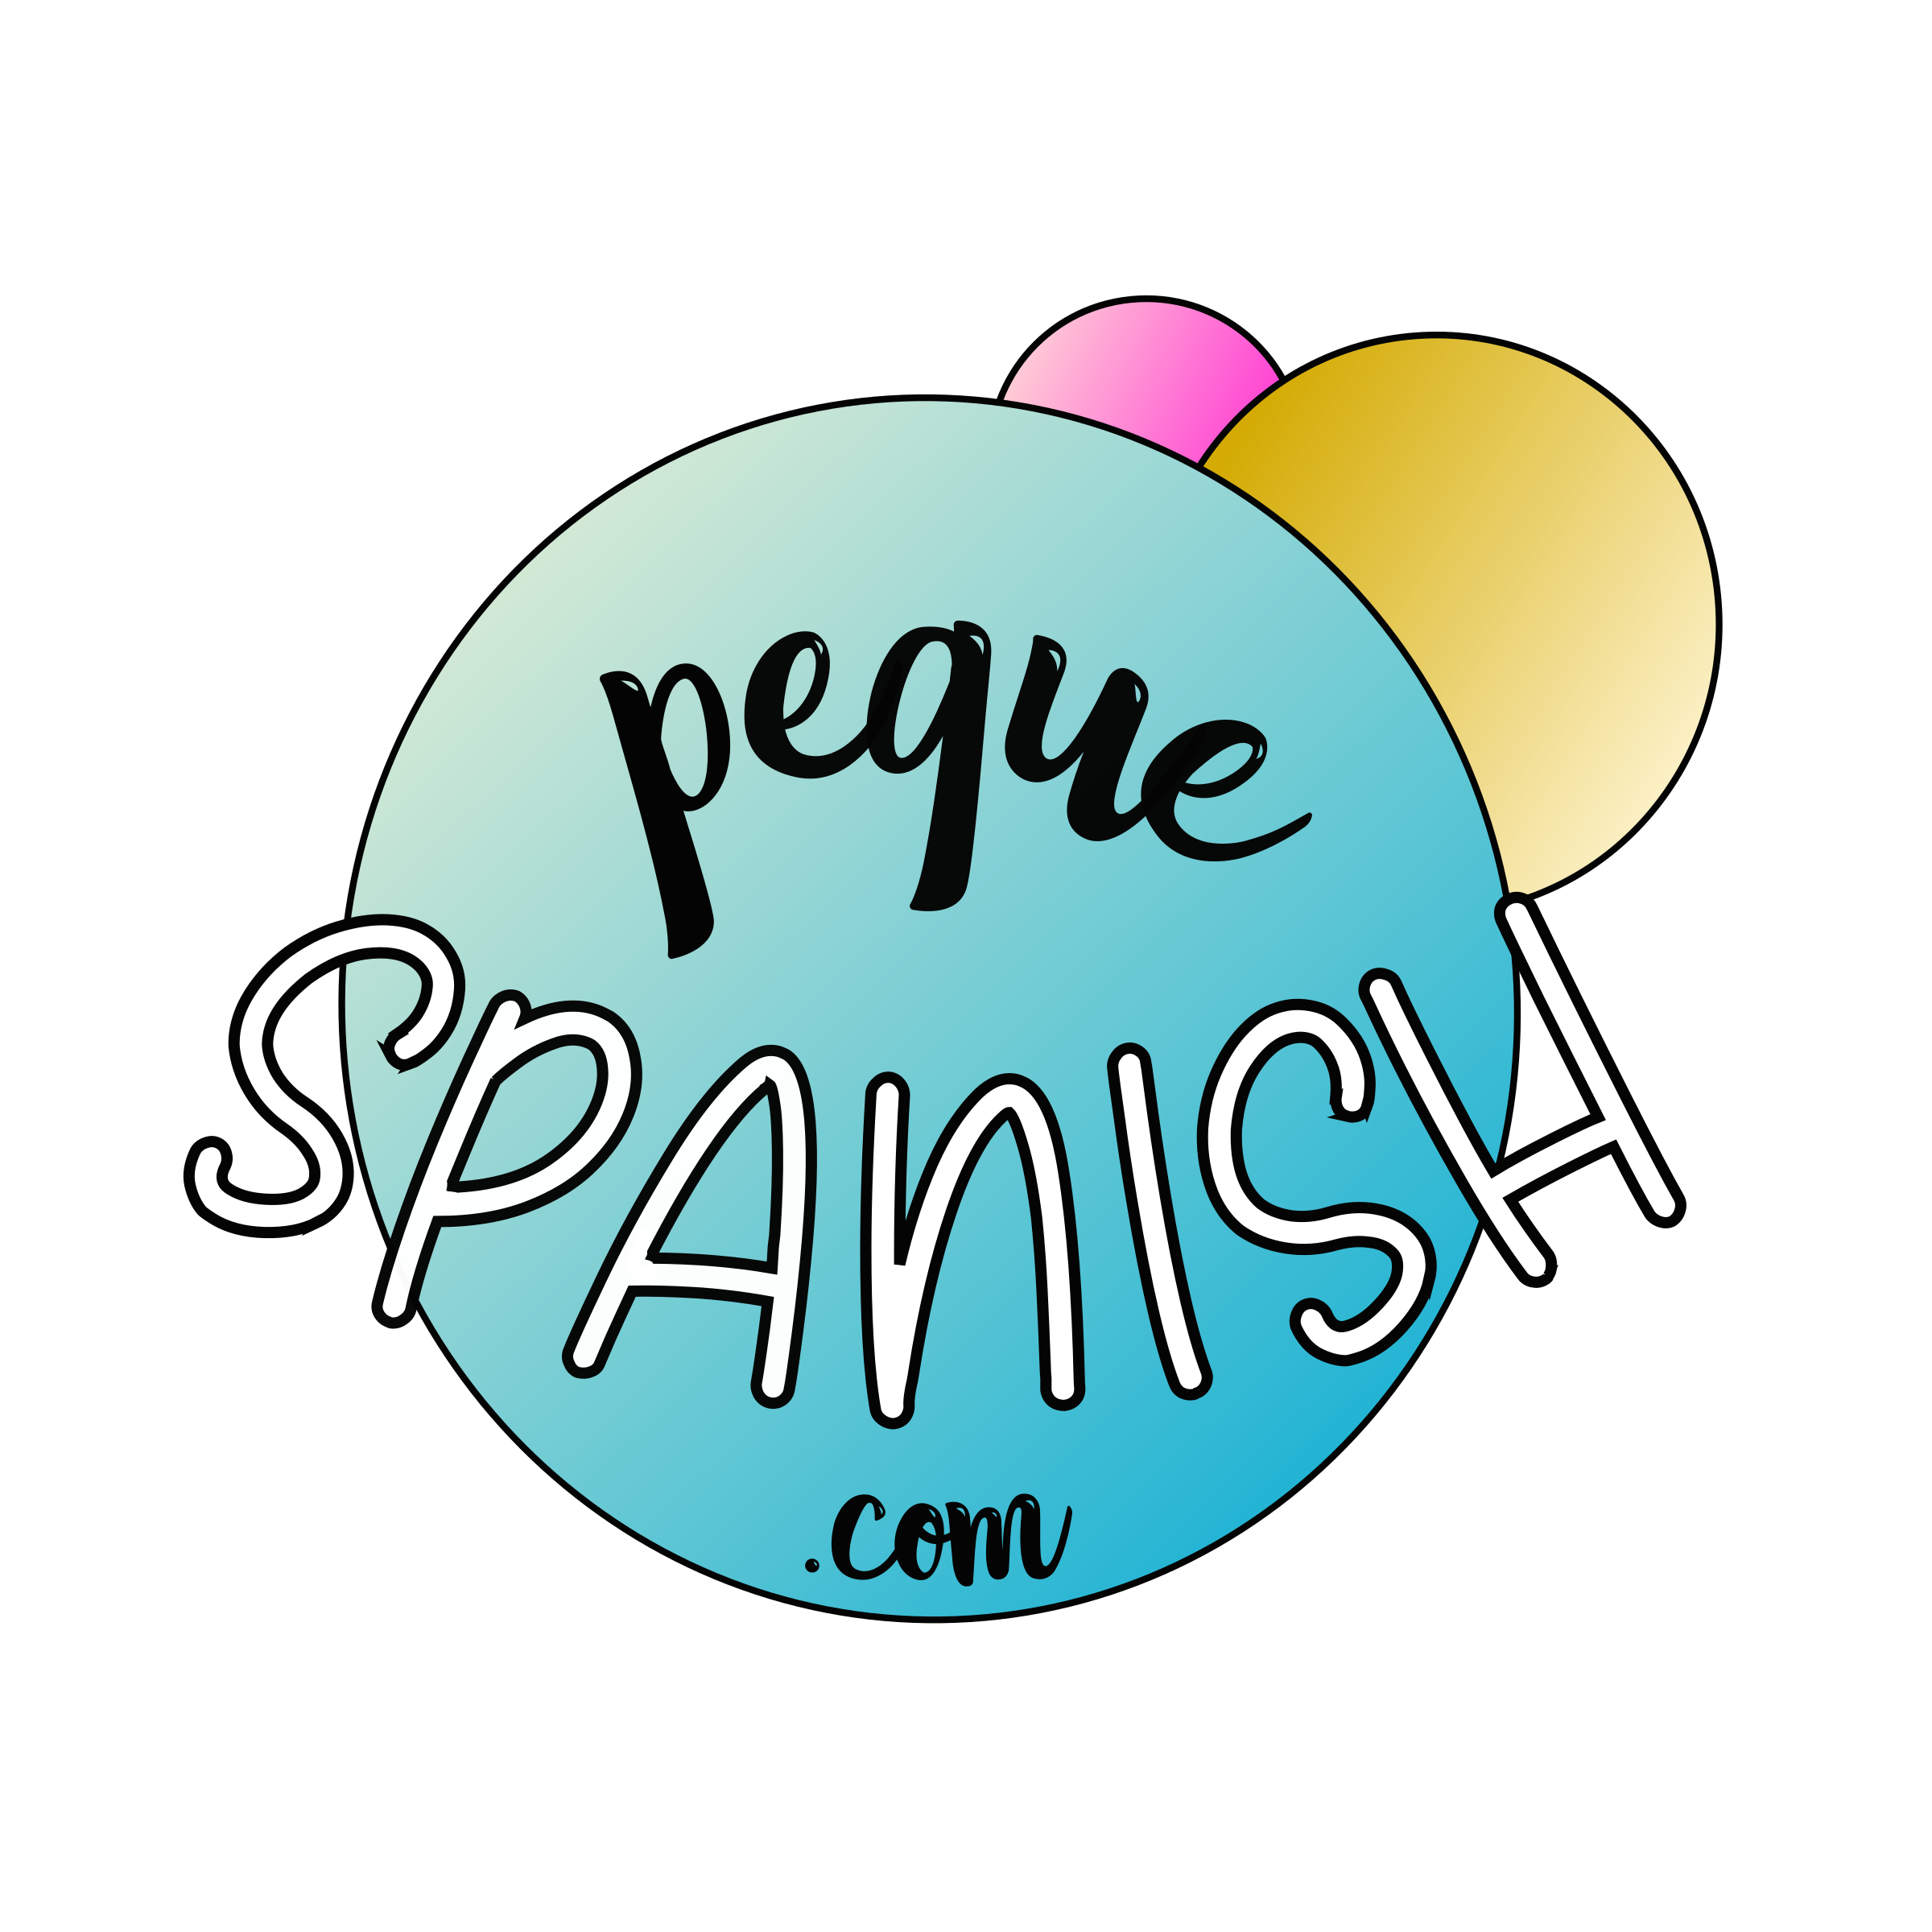 PequeSpanish